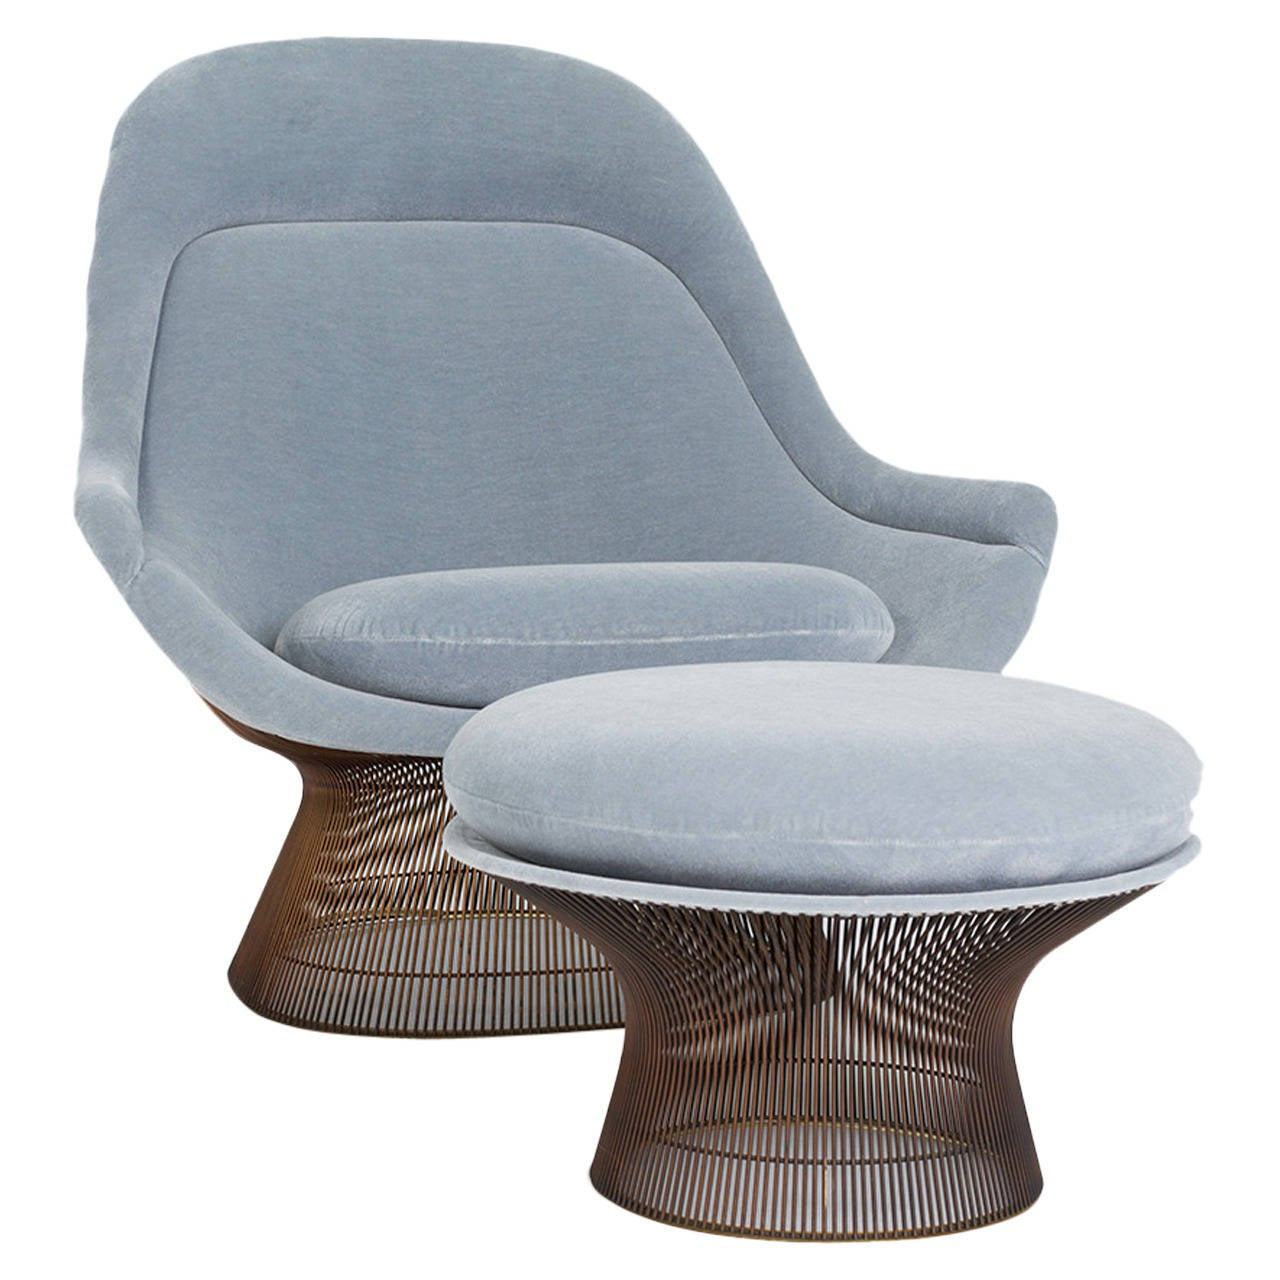 Platner Chair warren platner lounge chair and ottoman for knoll at 1stdibs